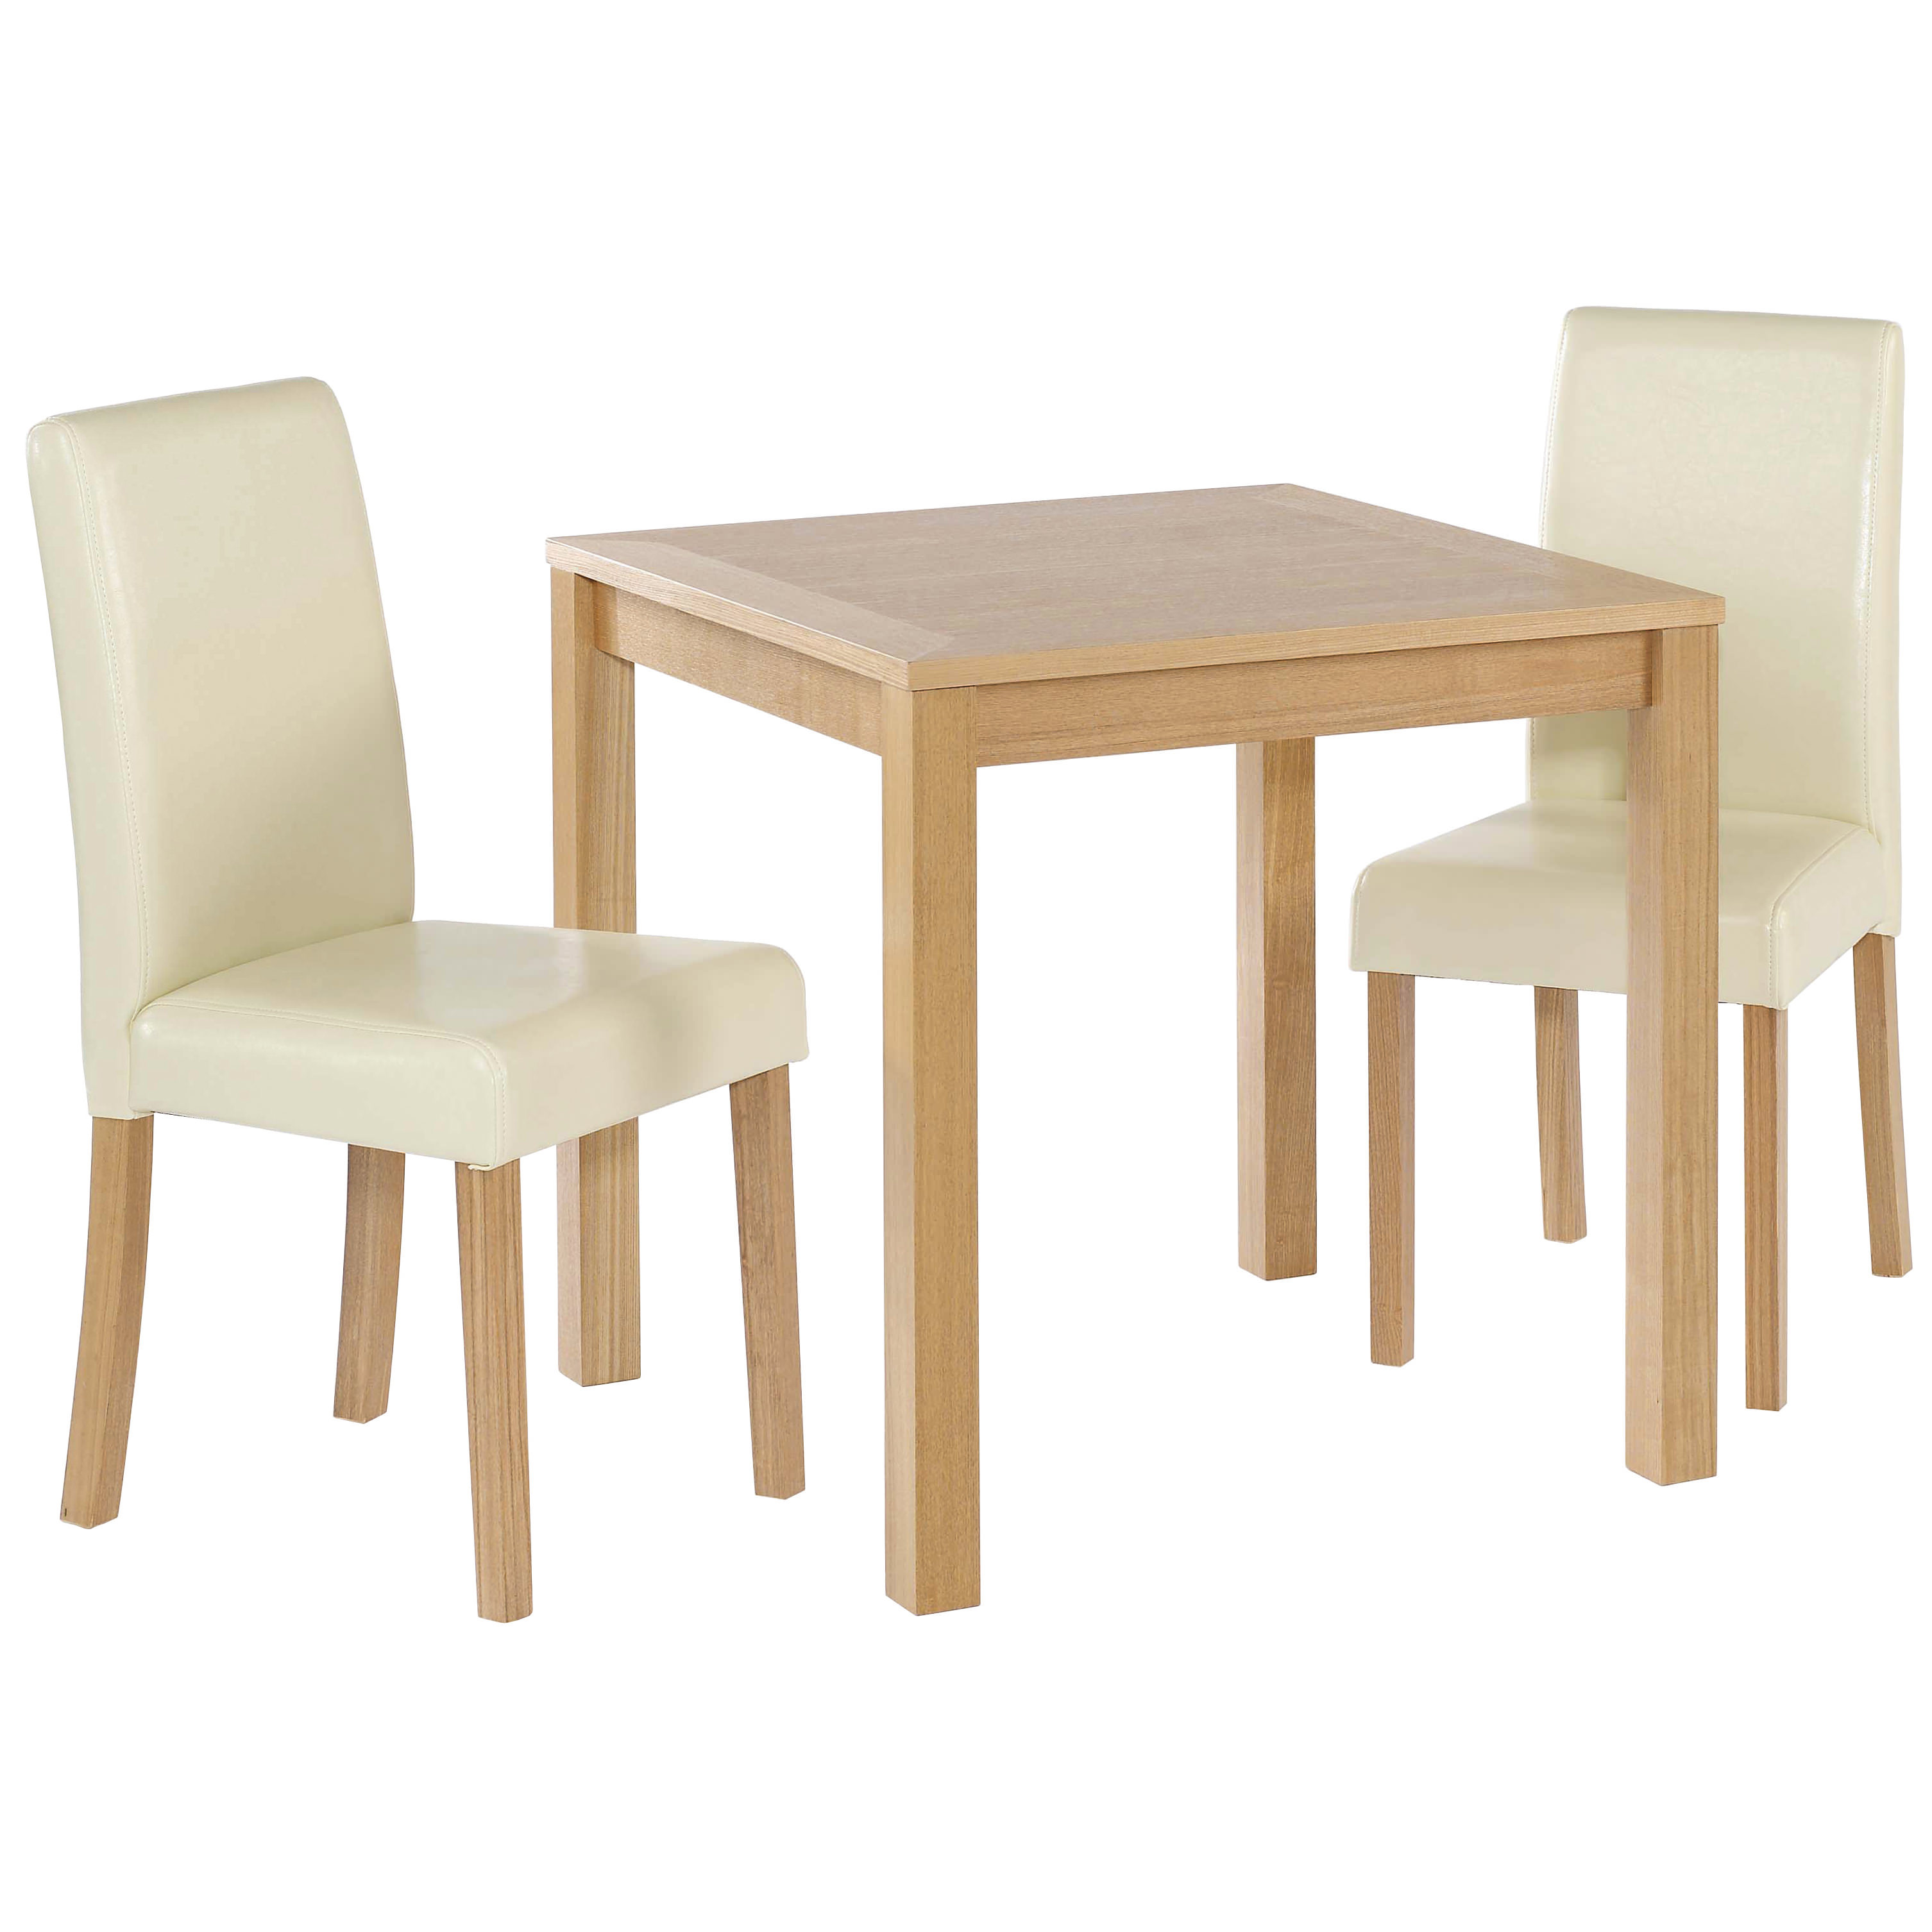 Red Dining Table Set: Oak Finish Dining Table And Chair Set 2 Leather Seats